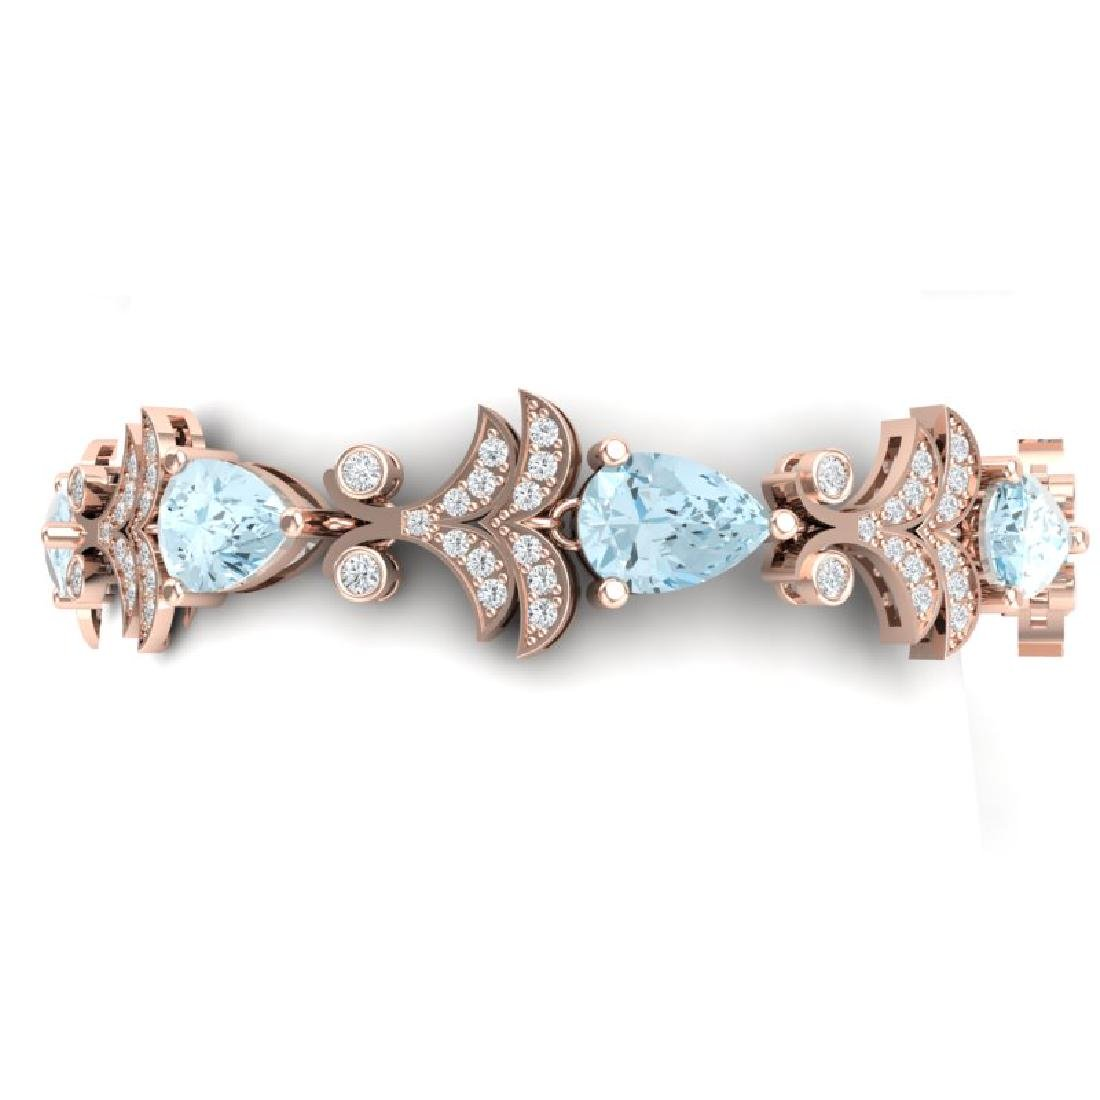 26.1 CTW Royalty Sky Topaz & VS Diamond Bracelet 18K